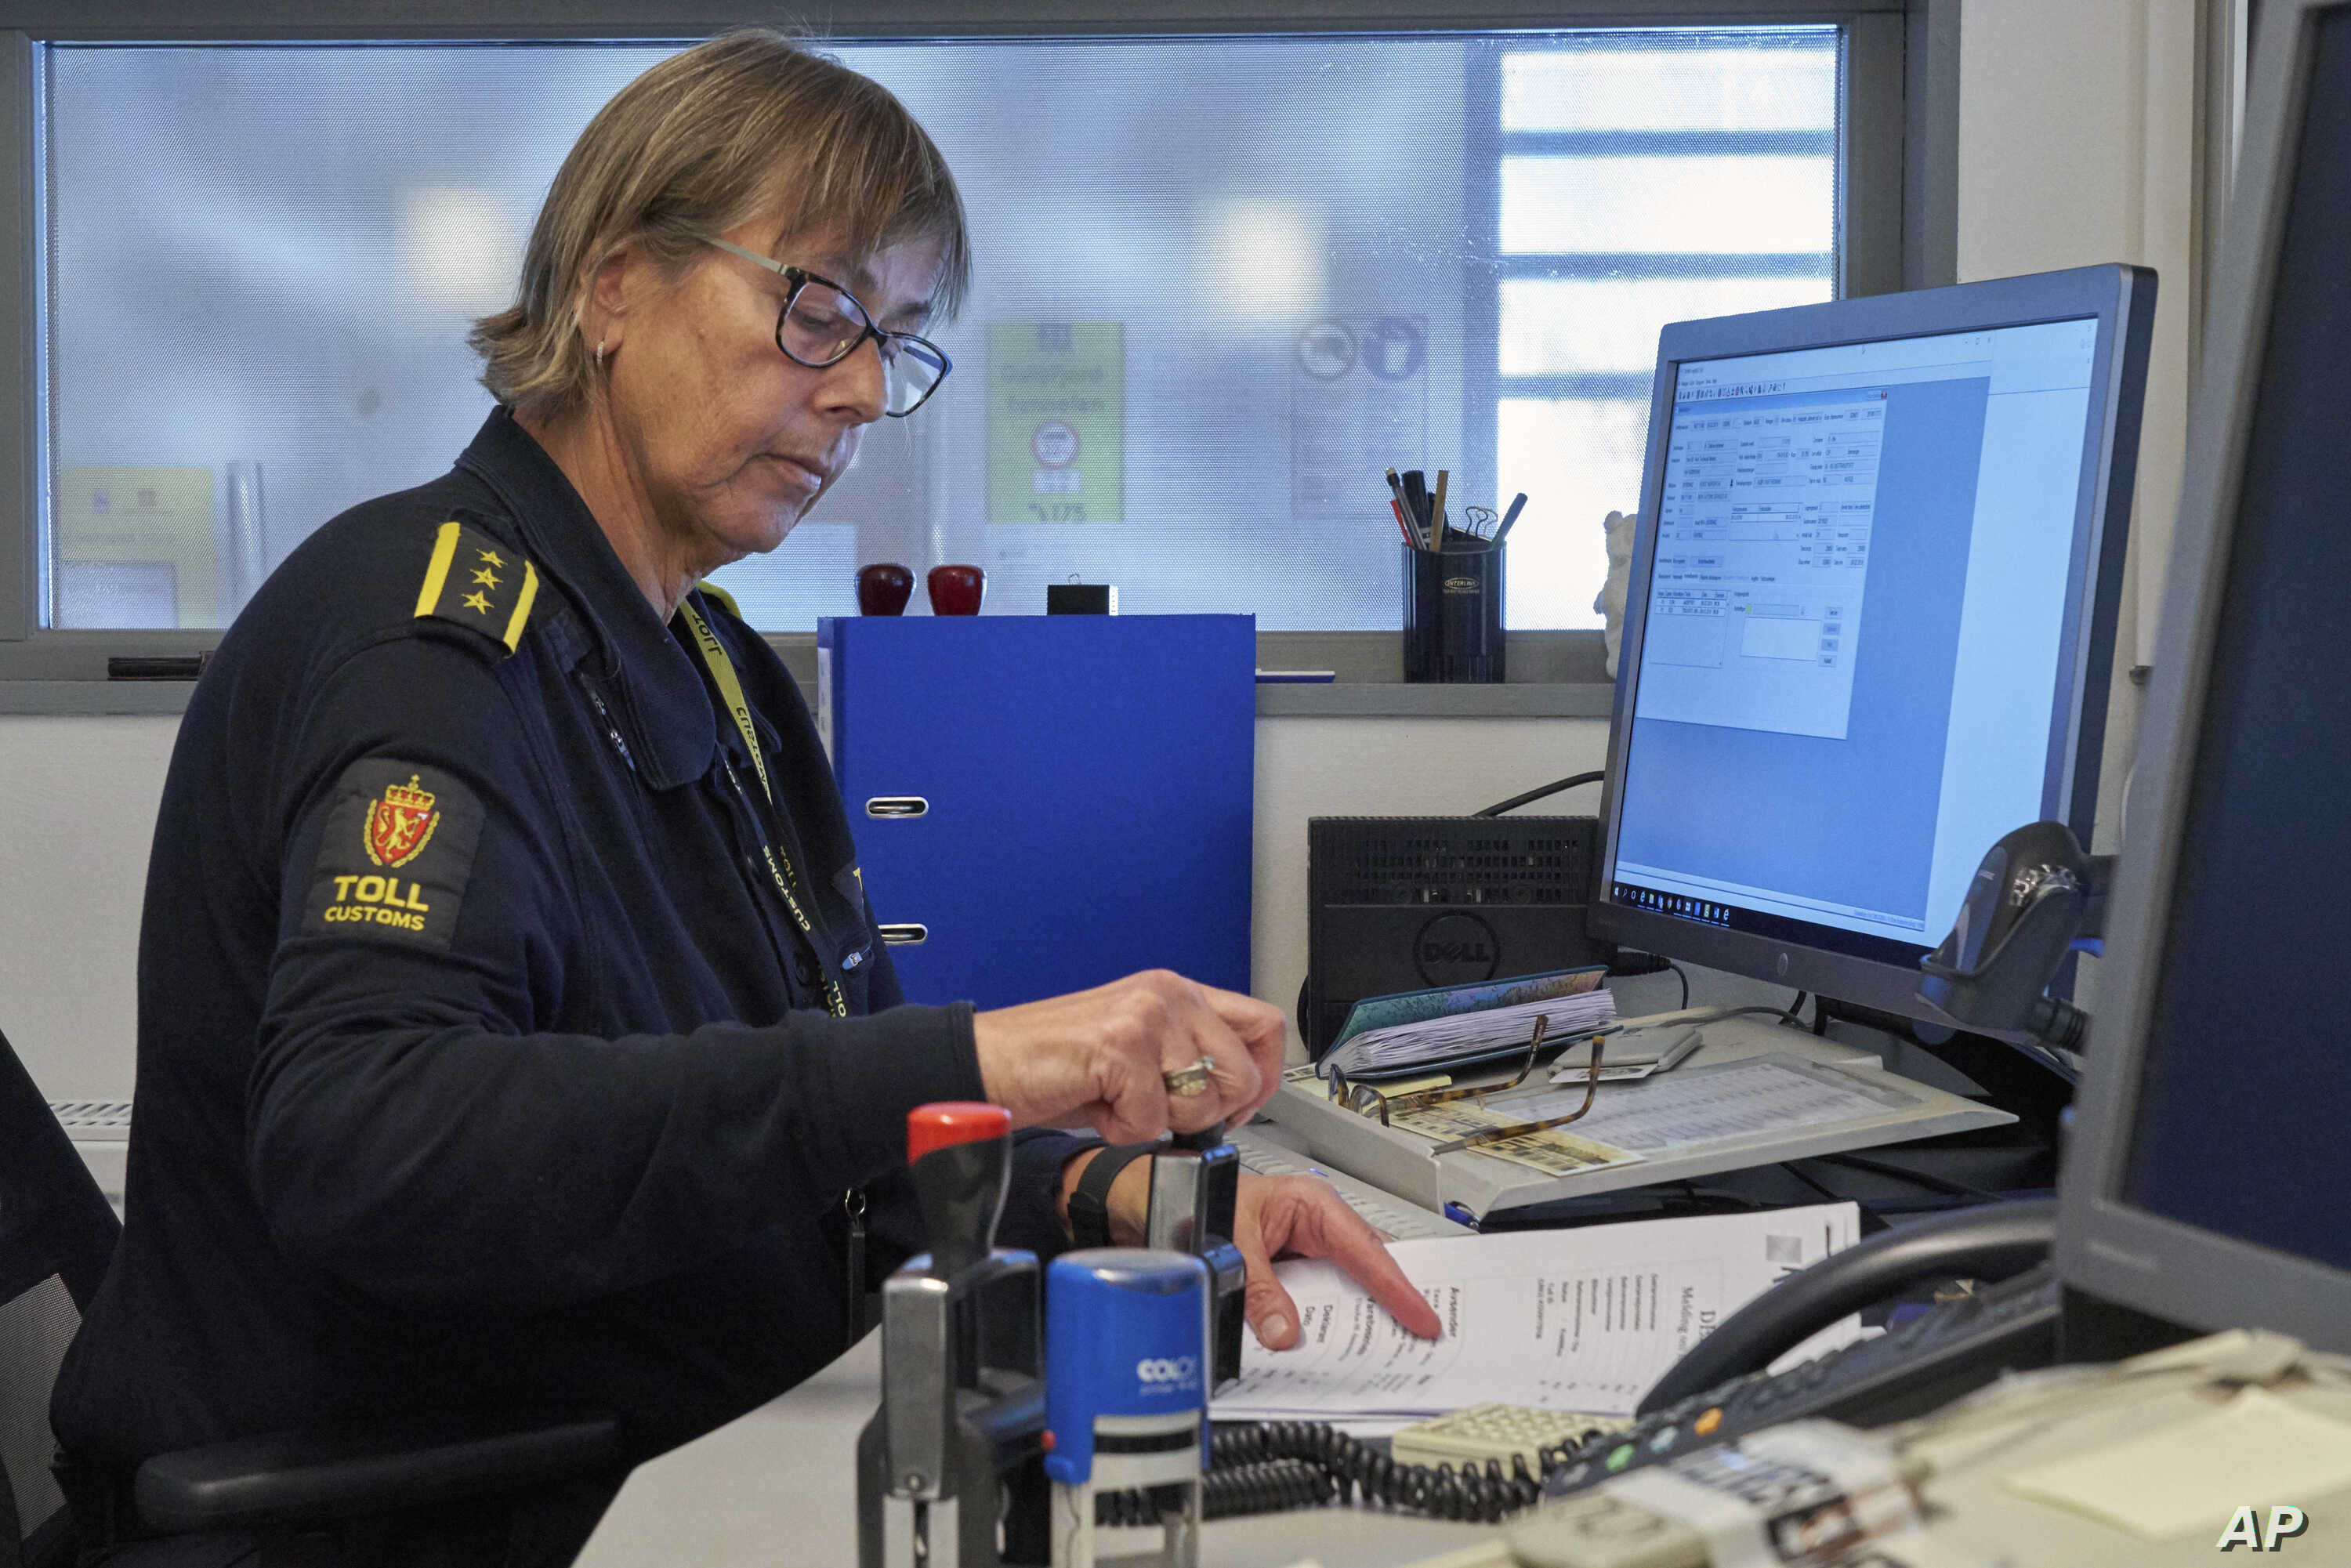 Chief Customs officer Nina Bullock was handling traditional paper clearance forms, Feb. 8 2019, as her computer informed her of an incoming truck using a new digital customs clearance system that allows transporters to drive through customs without s...